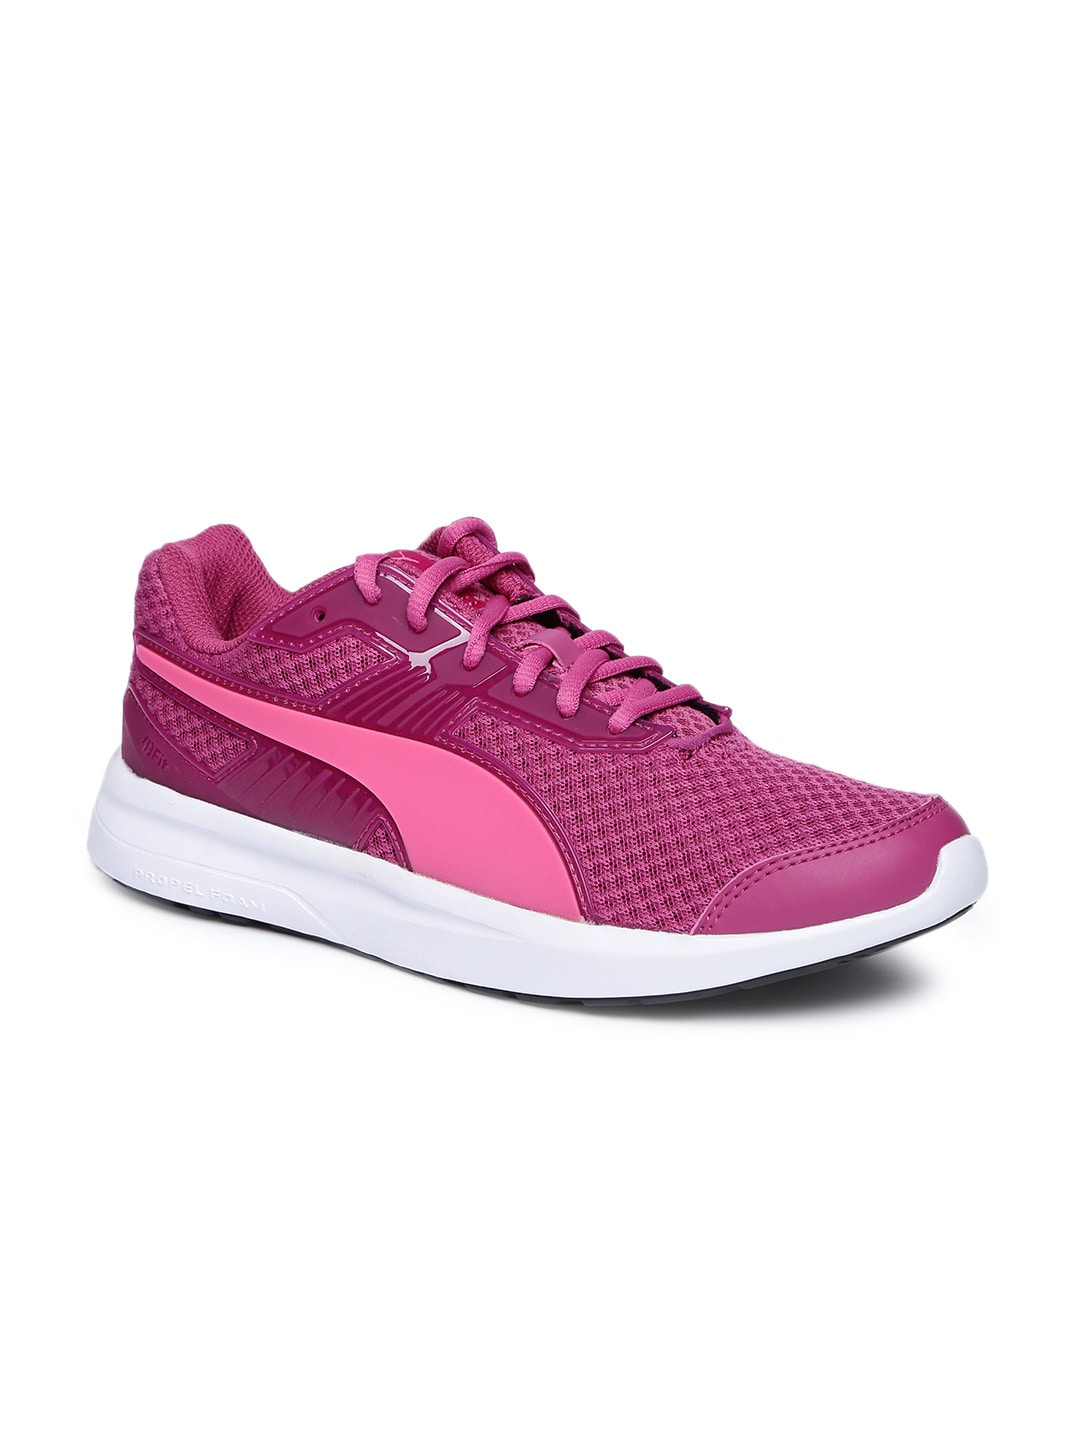 ff32d11edd56 Pink Shoe For Men Casual Shoes - Buy Pink Shoe For Men Casual Shoes online  in India